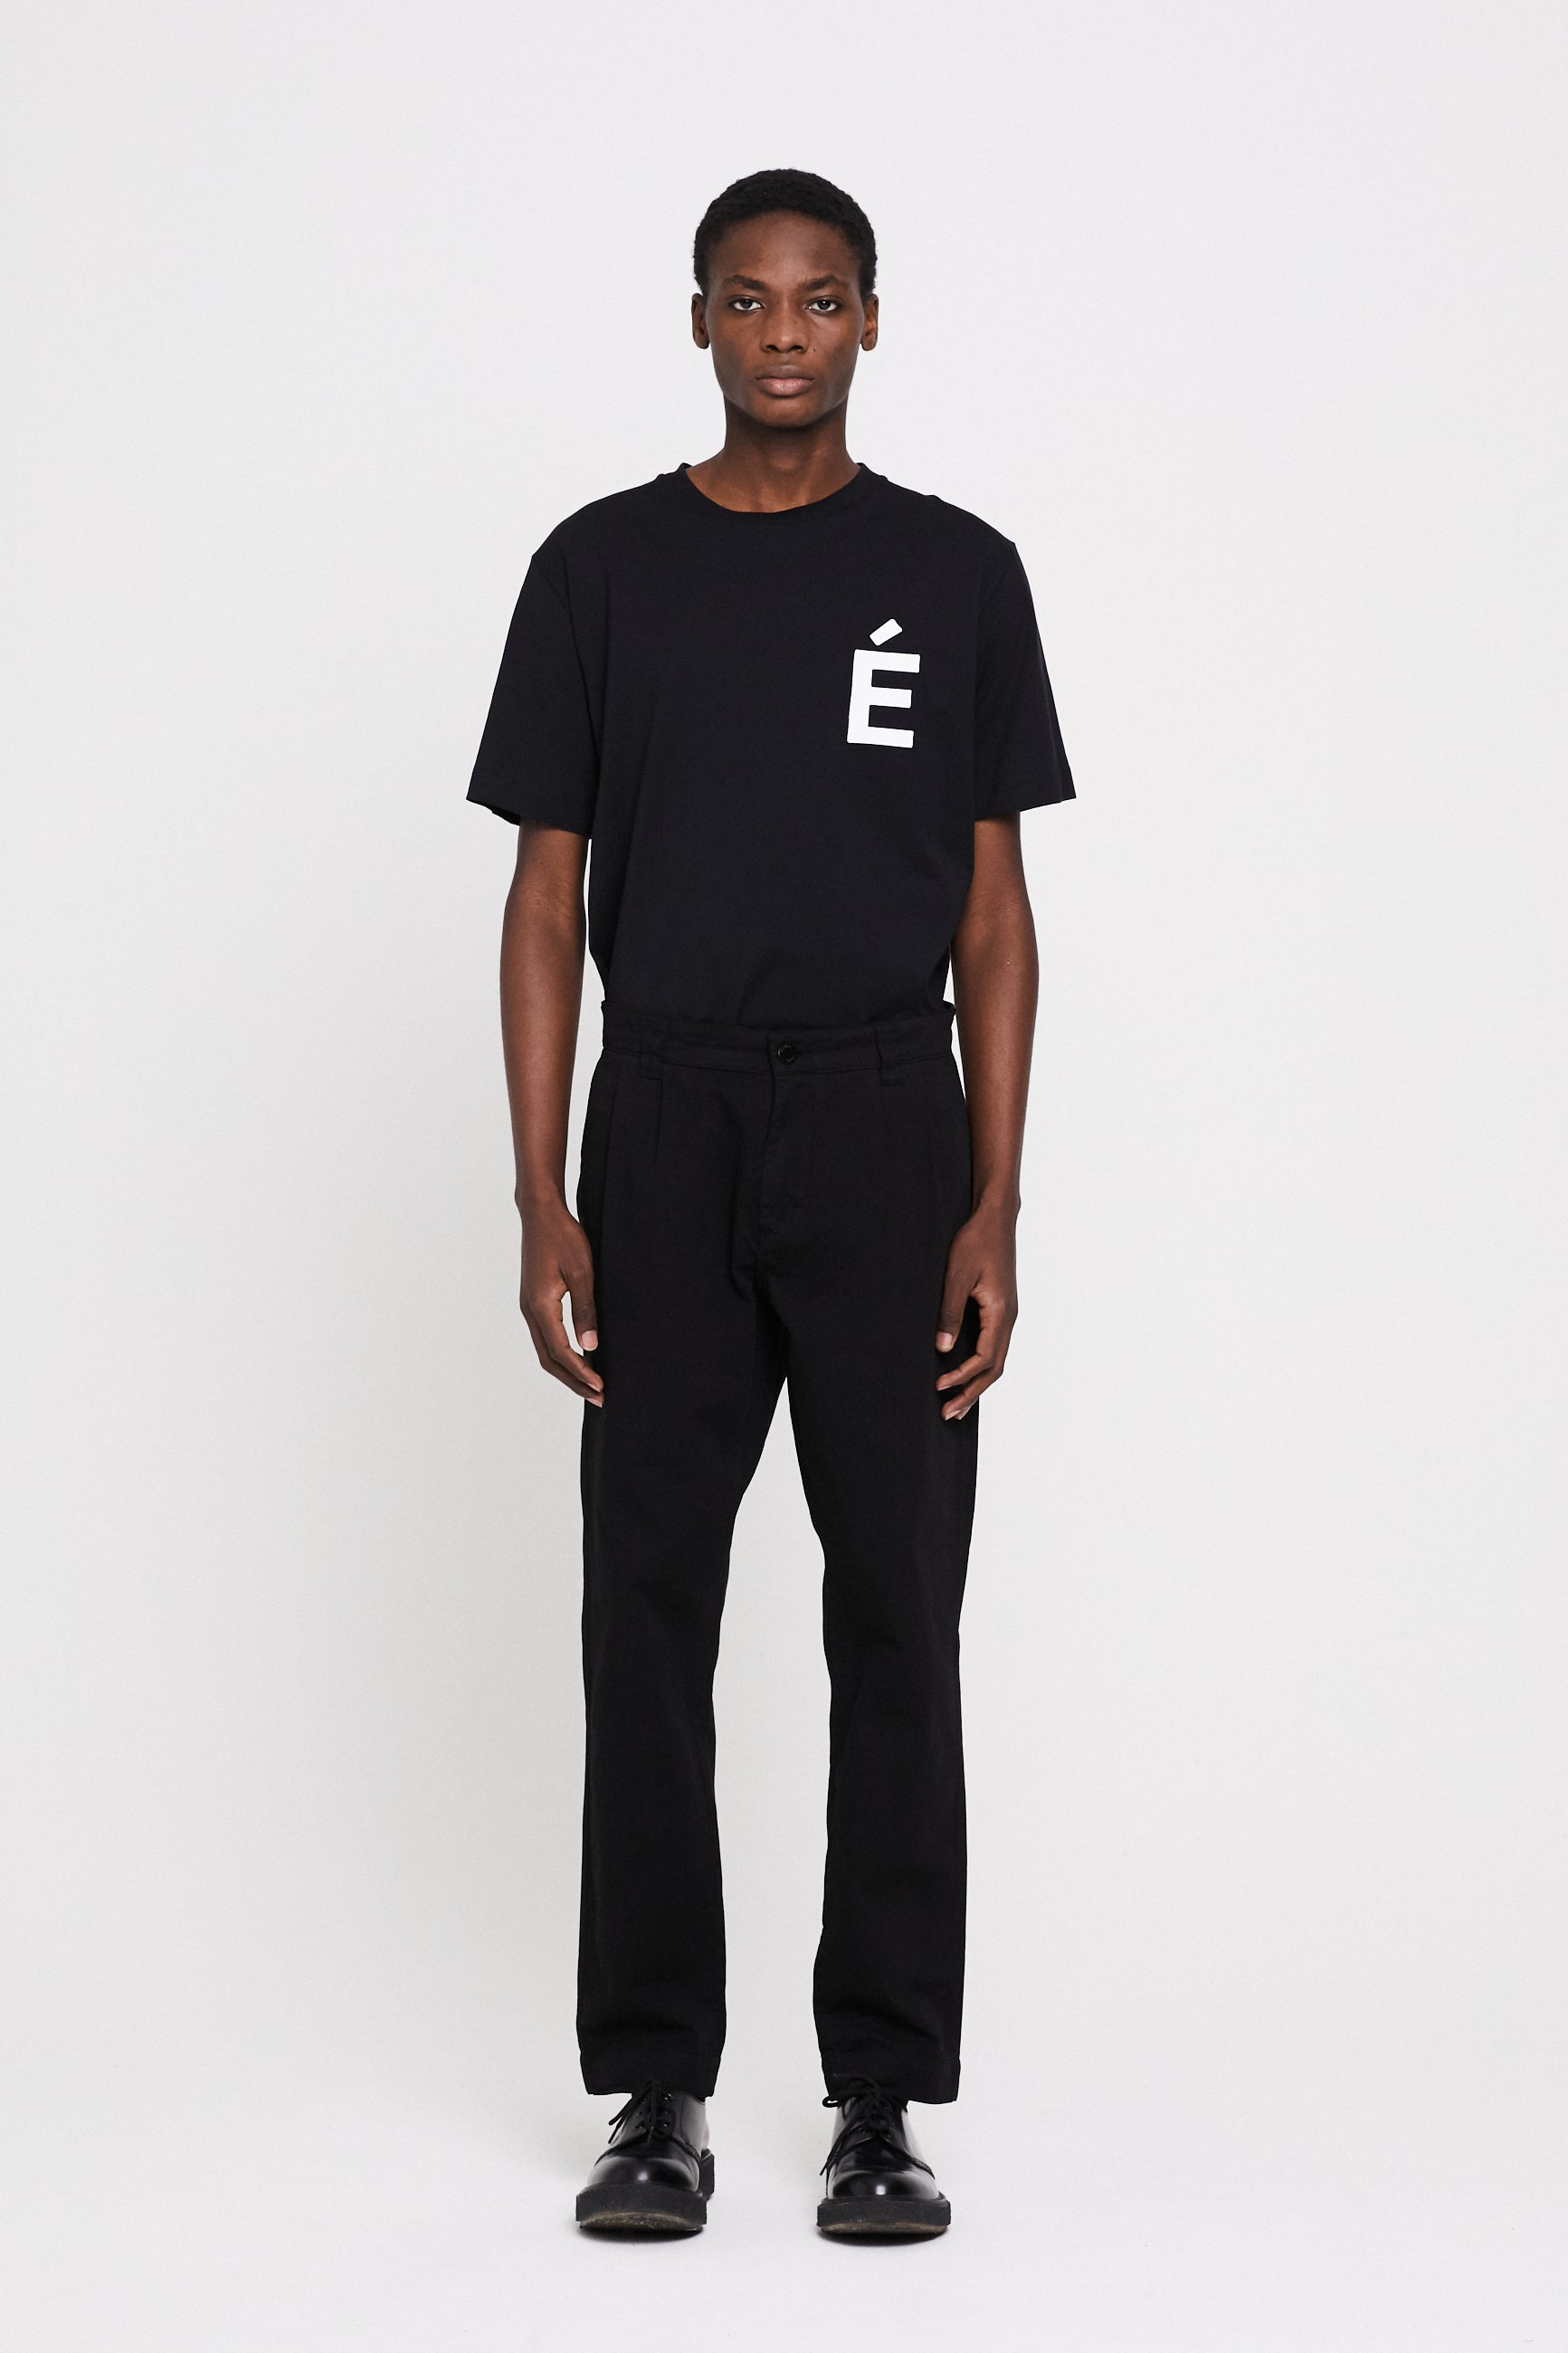 Études Cinema Garment Dyed Black Trousers 1